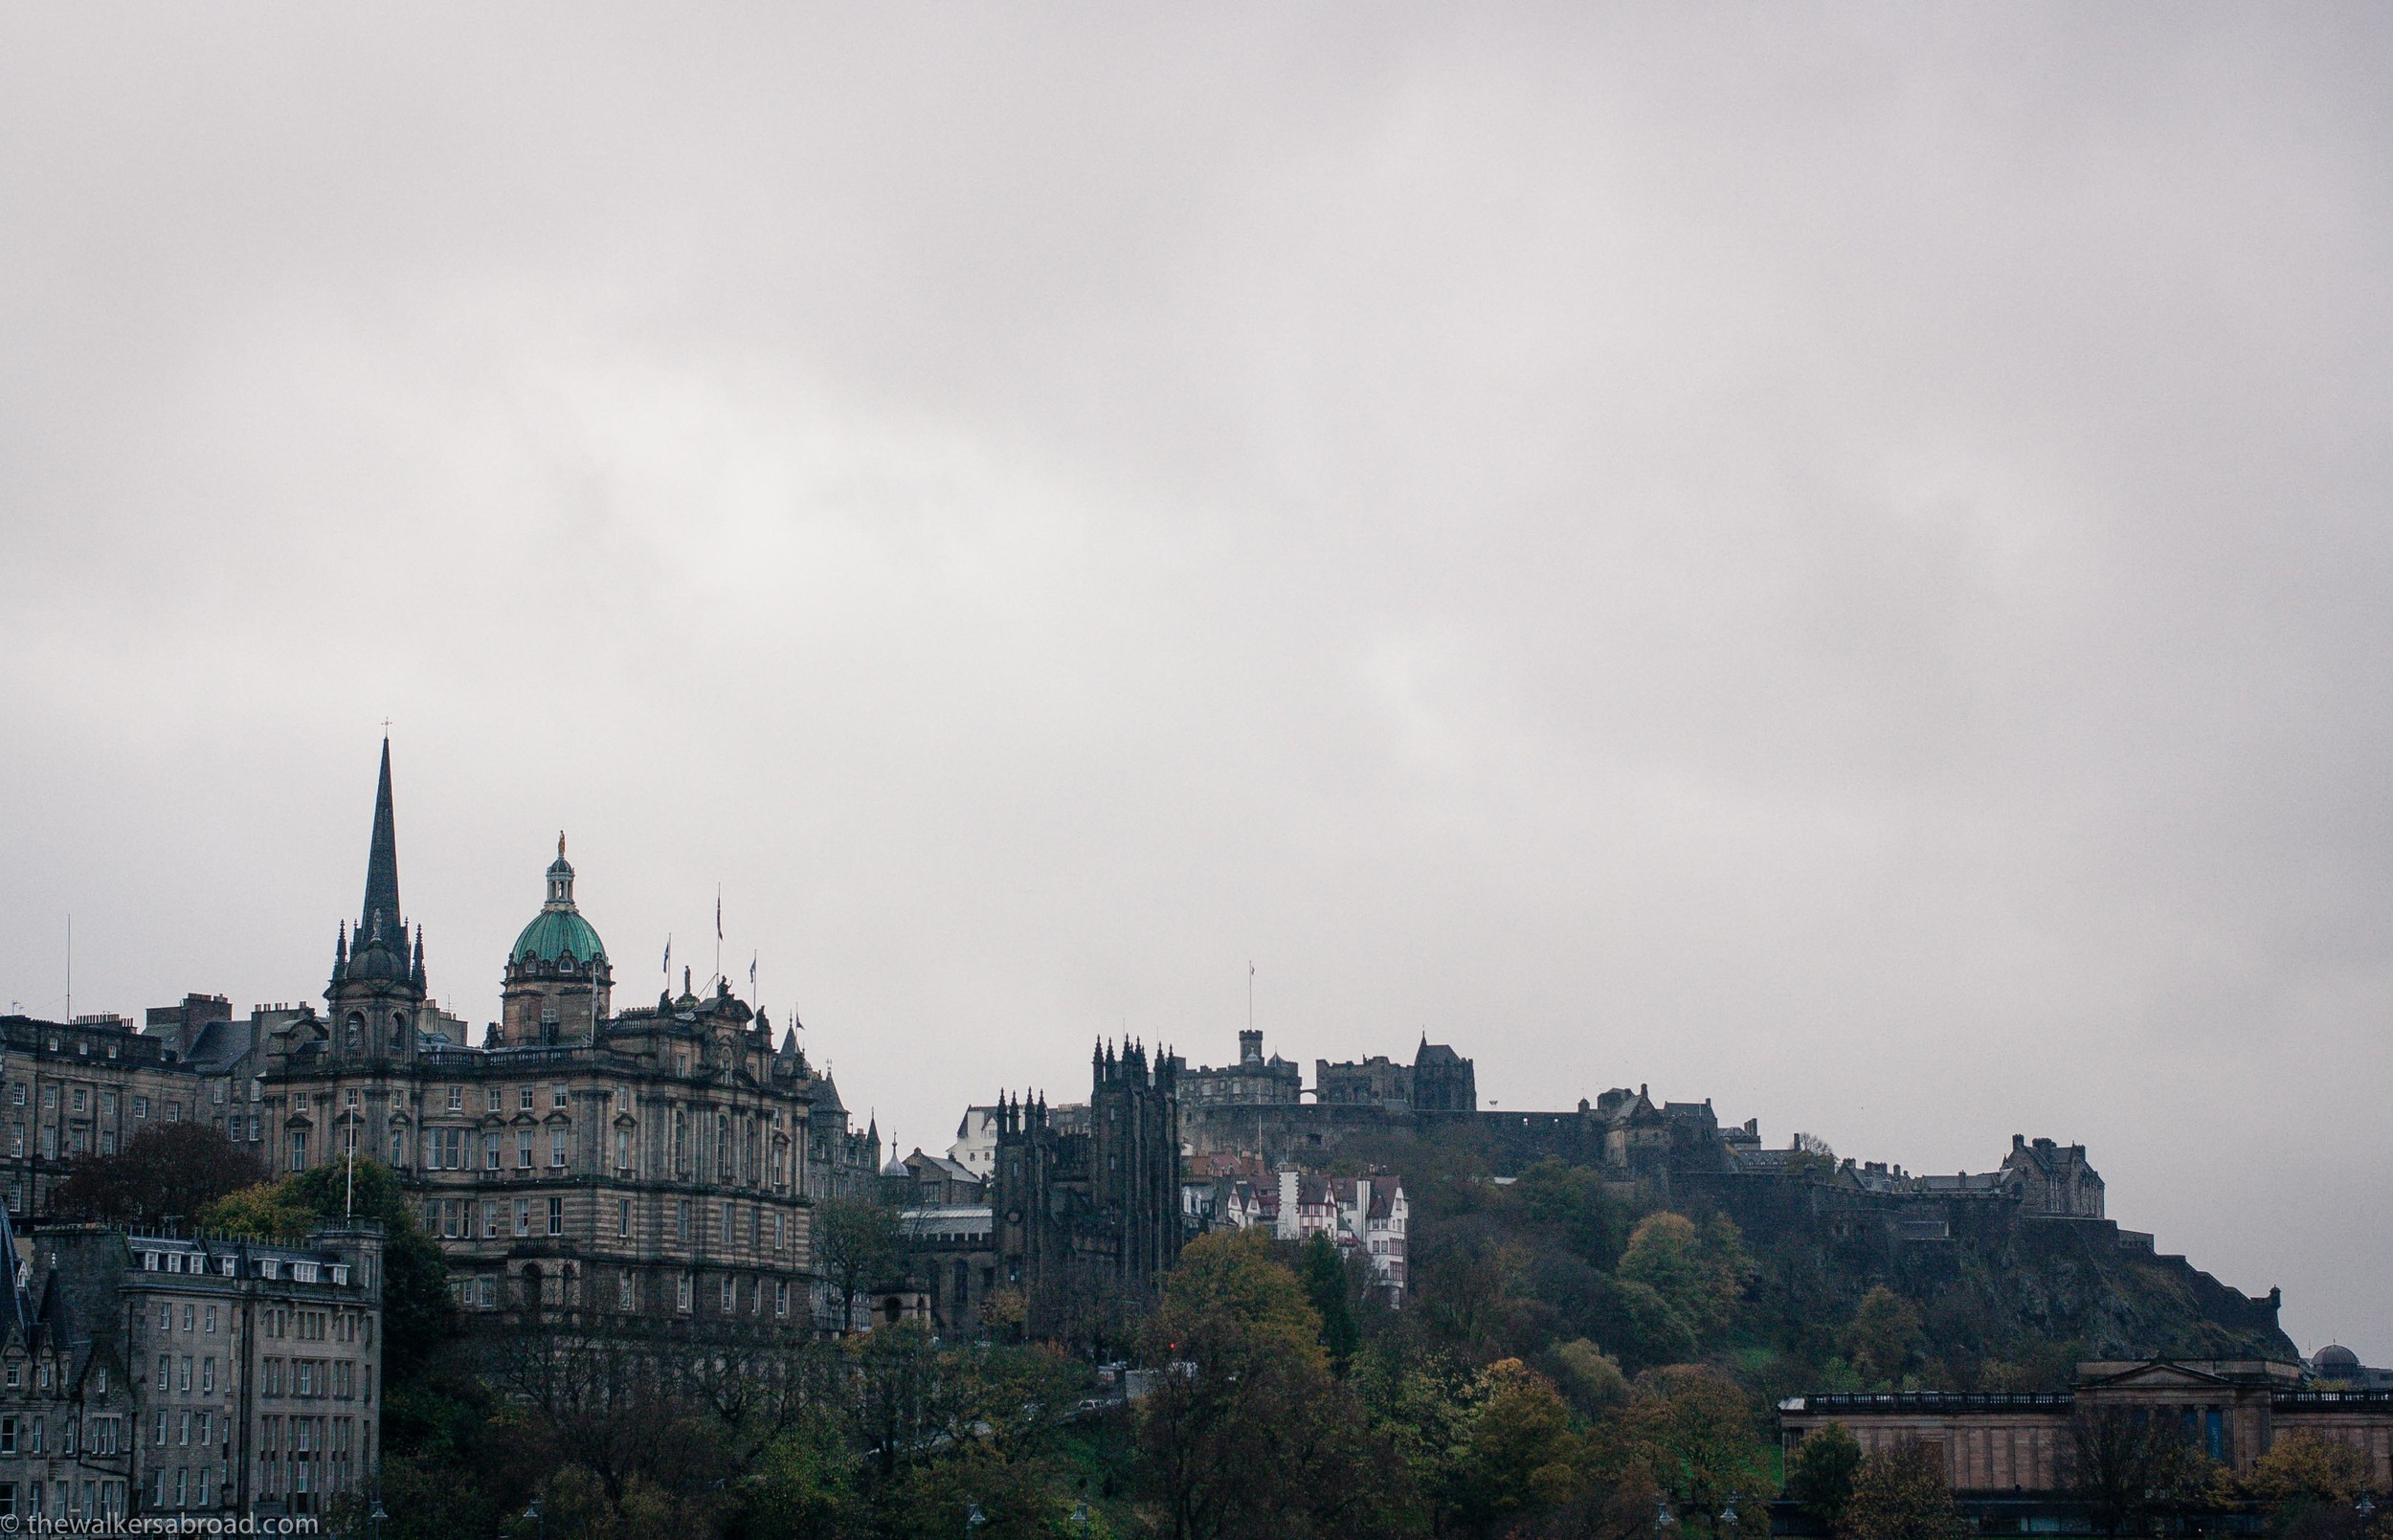 Edinburgh Castle is the walled building on the right center.